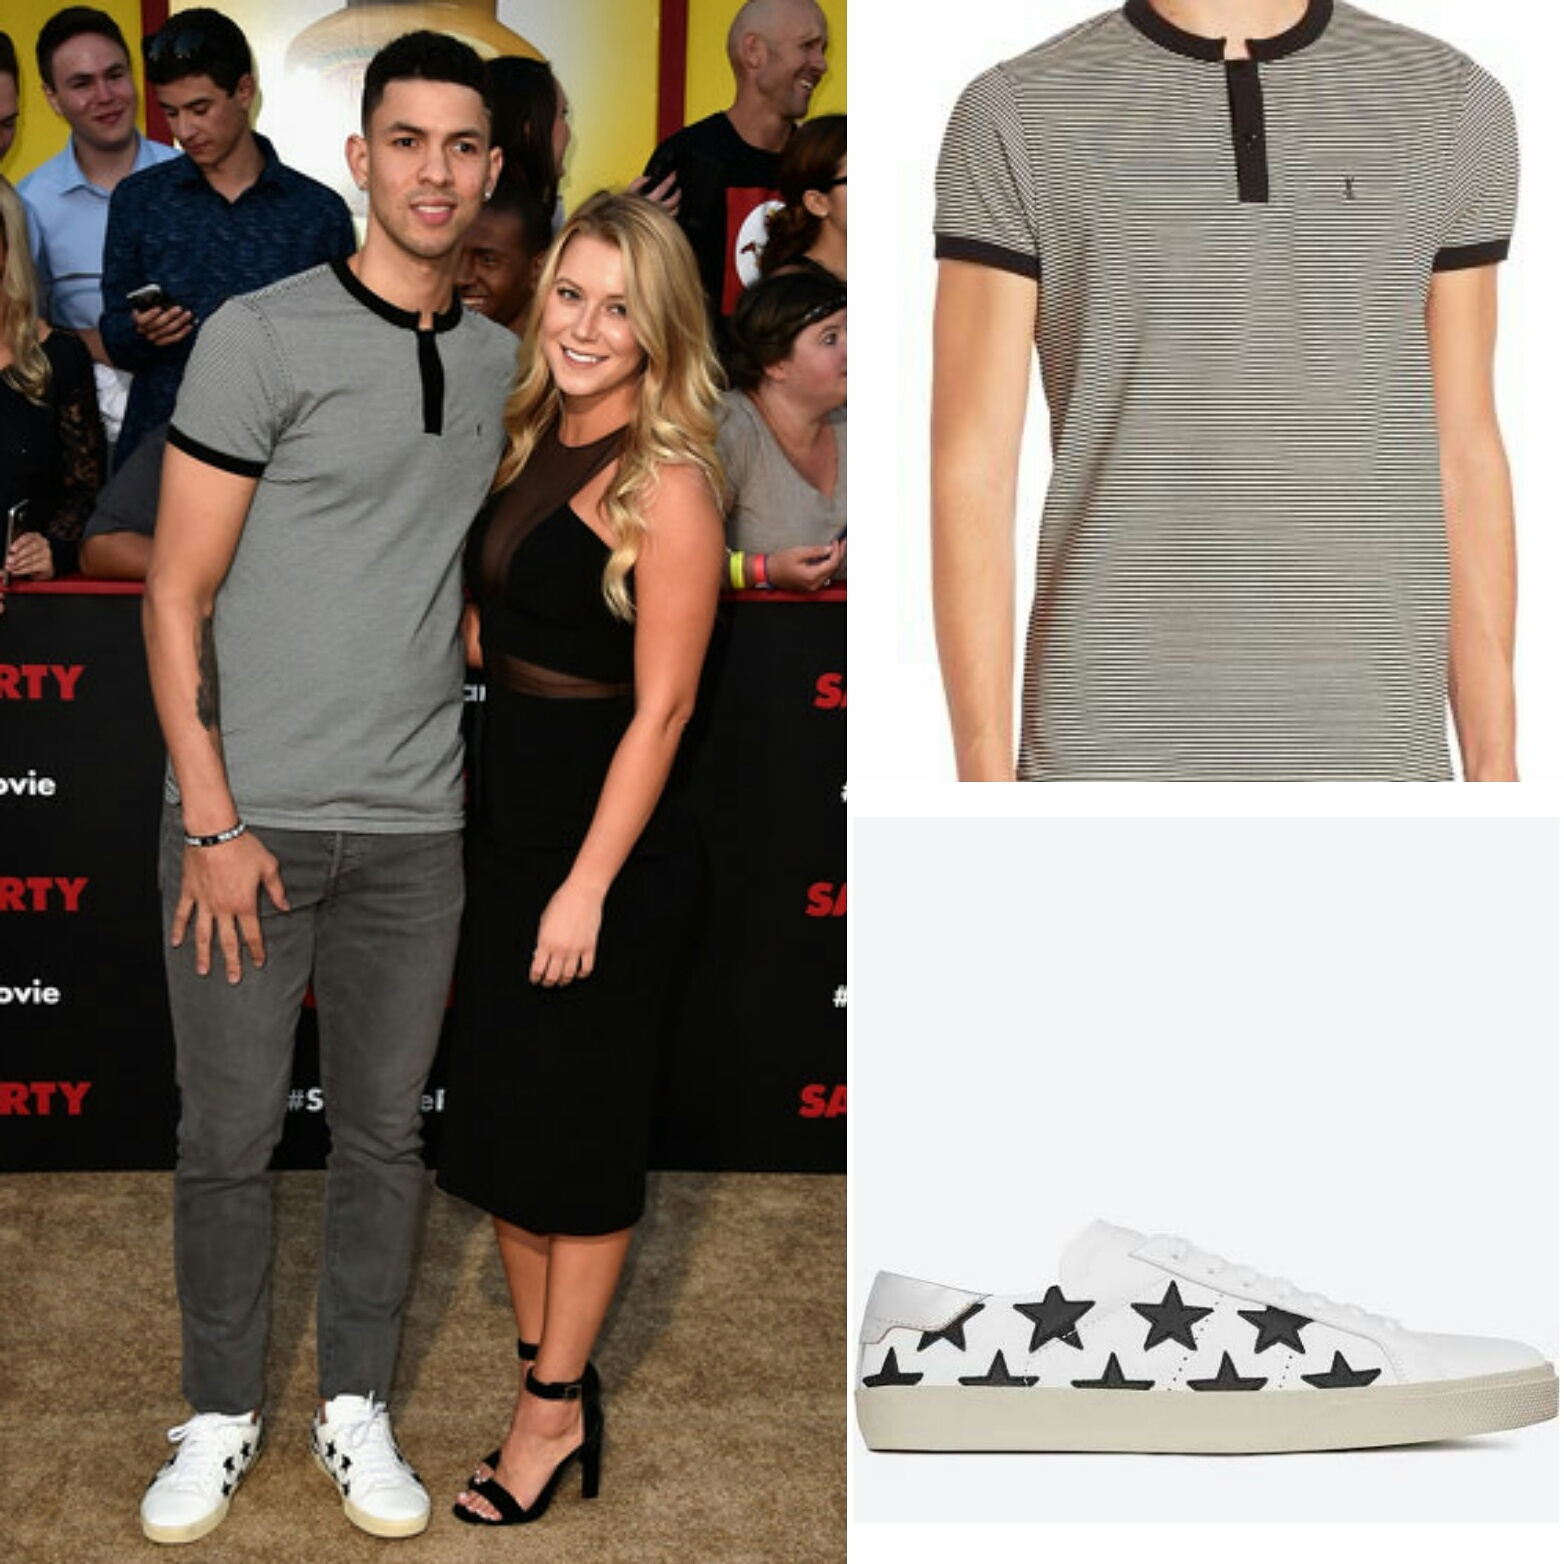 STYLE: NBA Austin Rivers' Sausage Party Premiere Saint Laurent Striped Henley And Saint Laurent Signature Court Classic Sneakers